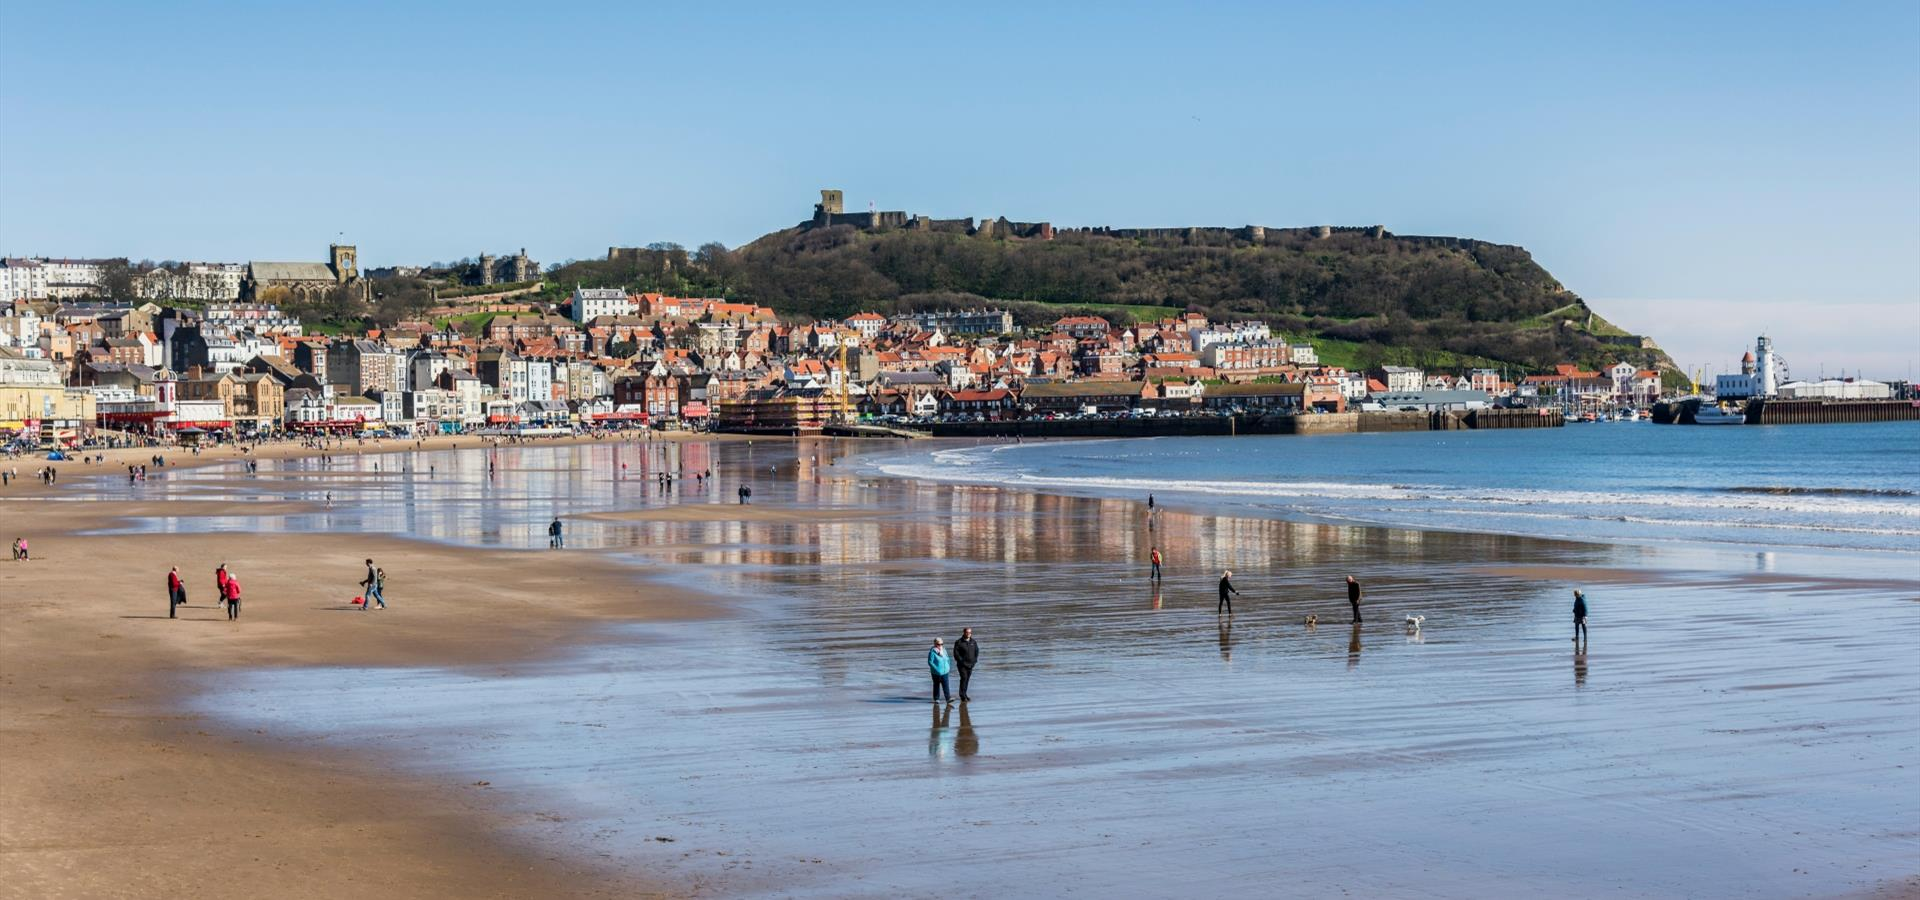 An image of Scarborough South Bay Beach by Duncan Lomax